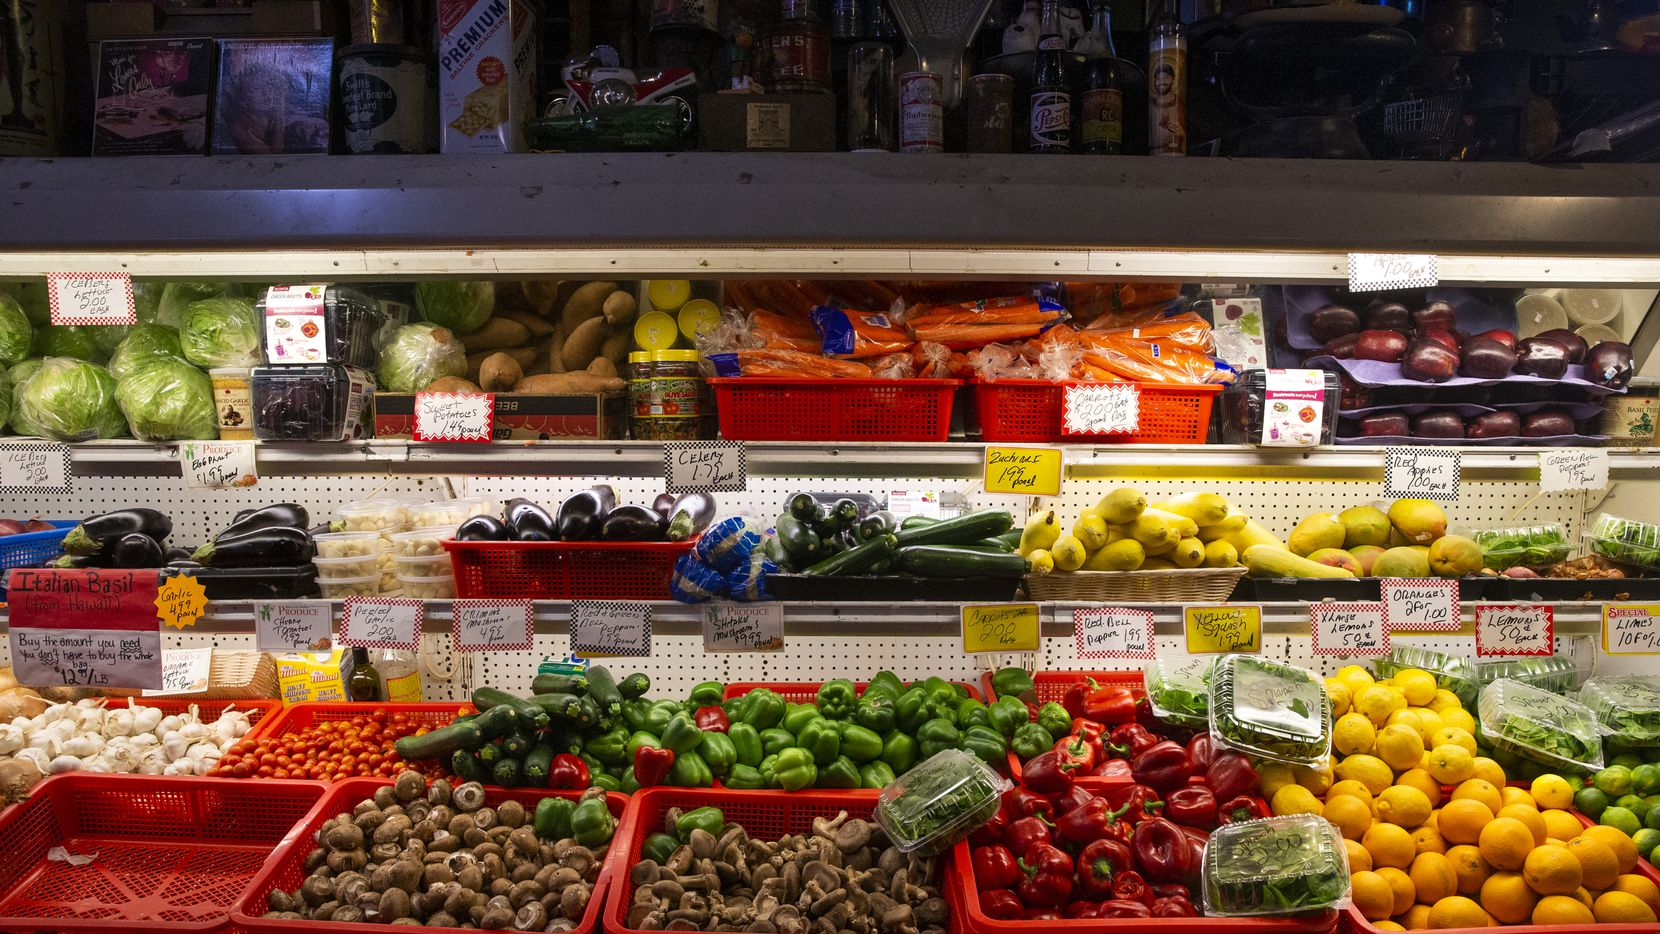 The produce aisle at Jimmy's Food Store in Old East Dallas on April 22, 2020. Fewer customers are visiting the store due to the coronavirus pandemic, but they're buying more groceries when they visit, co-owner Paul DiCarlo said. All employees are wearing masks, sanitizing surfaces often and practicing social distancing to keep themselves and customers safe.